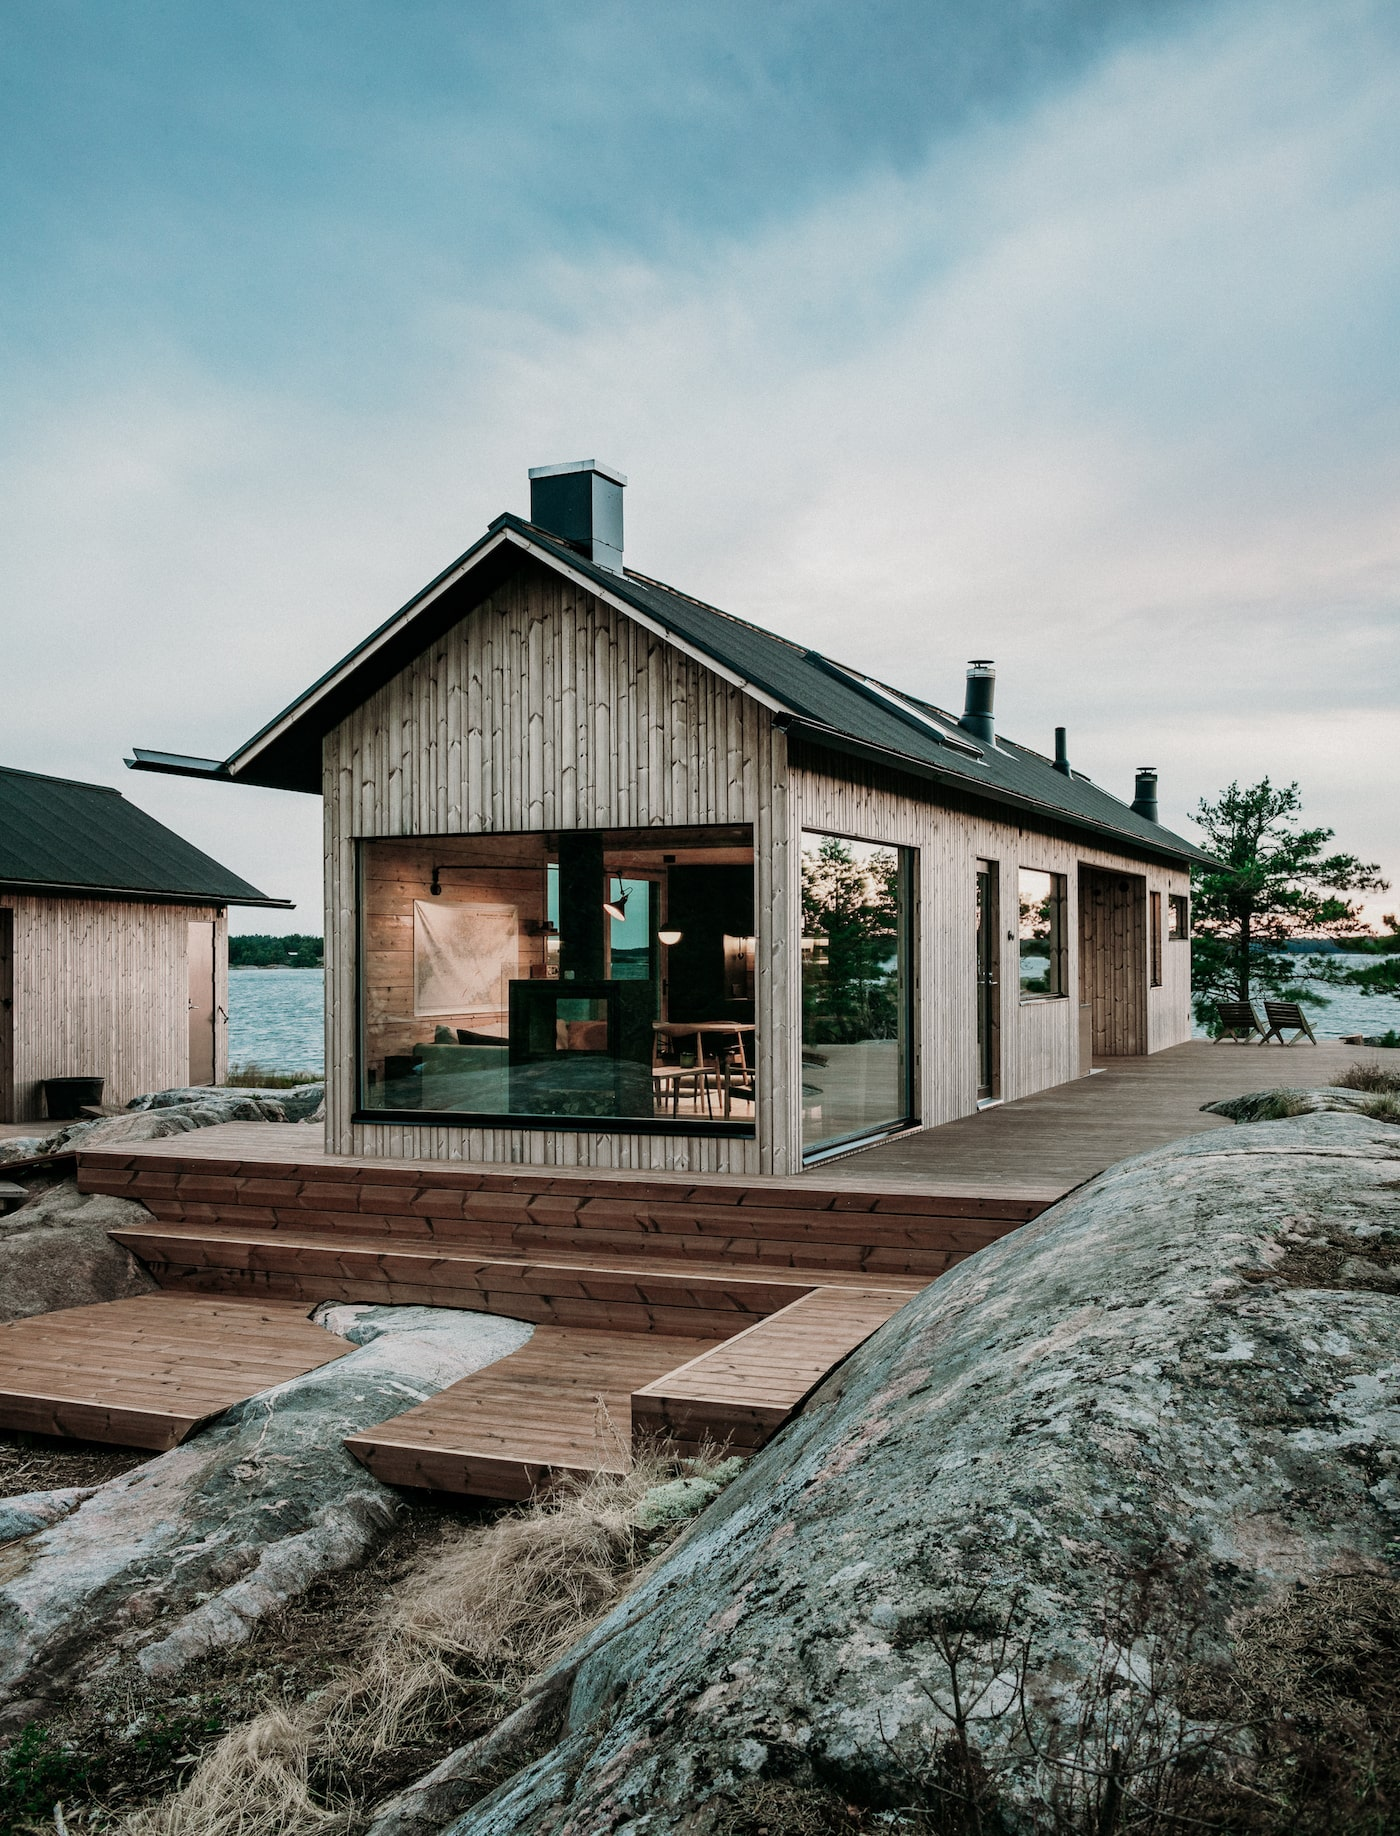 Timber off-grid island cabin